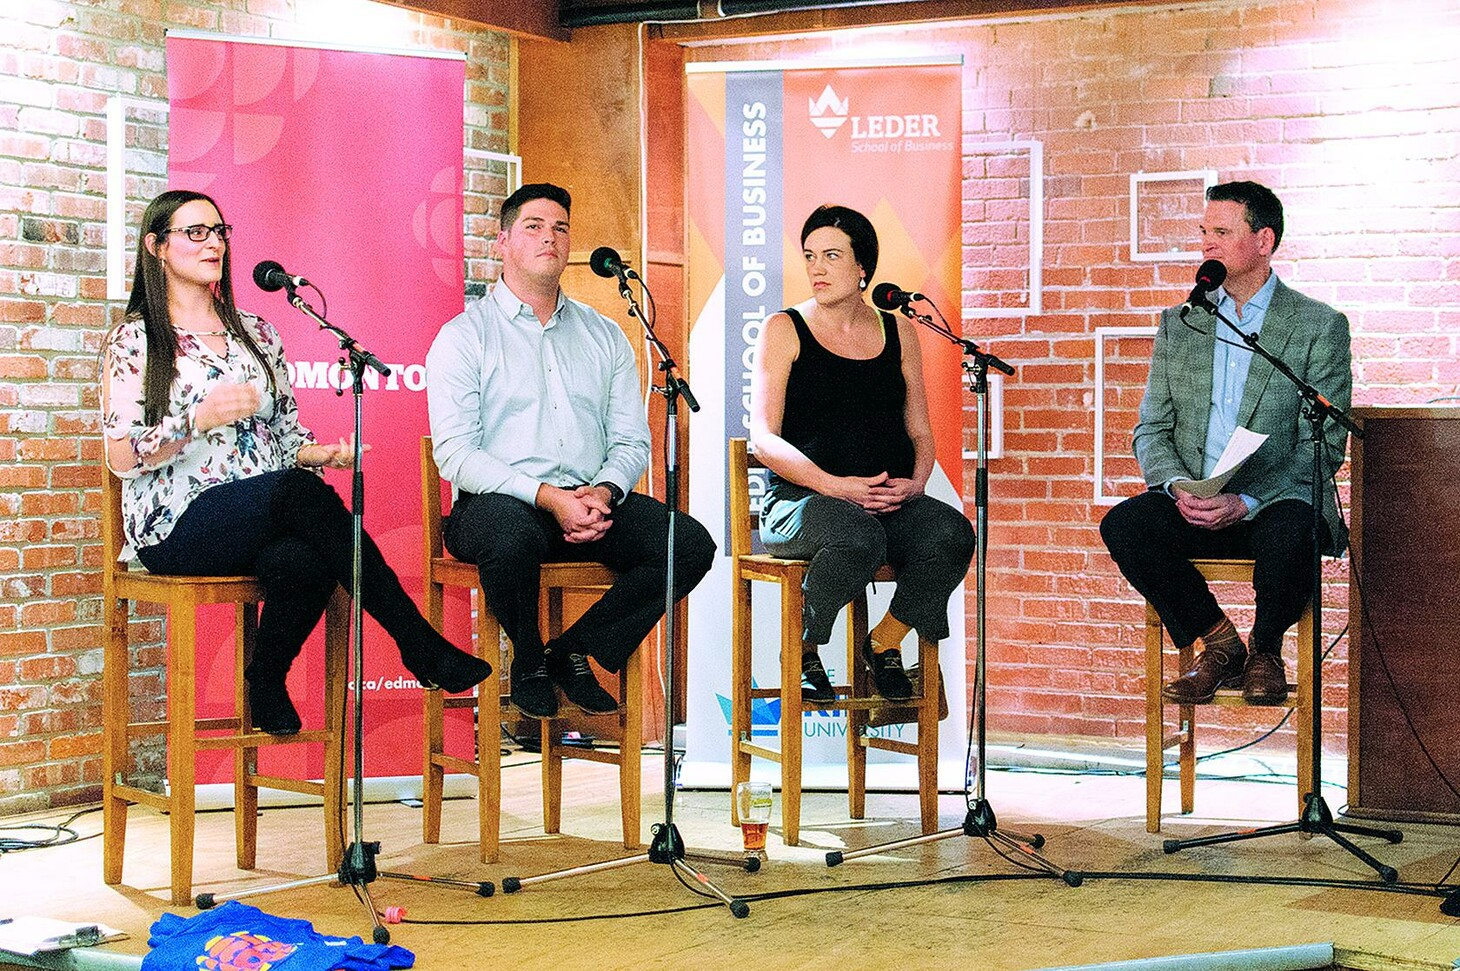 Entrepreneurs Nicolette Leonardis, Jordan Jolicoeur, and Justine Barber with Mike Connolly.